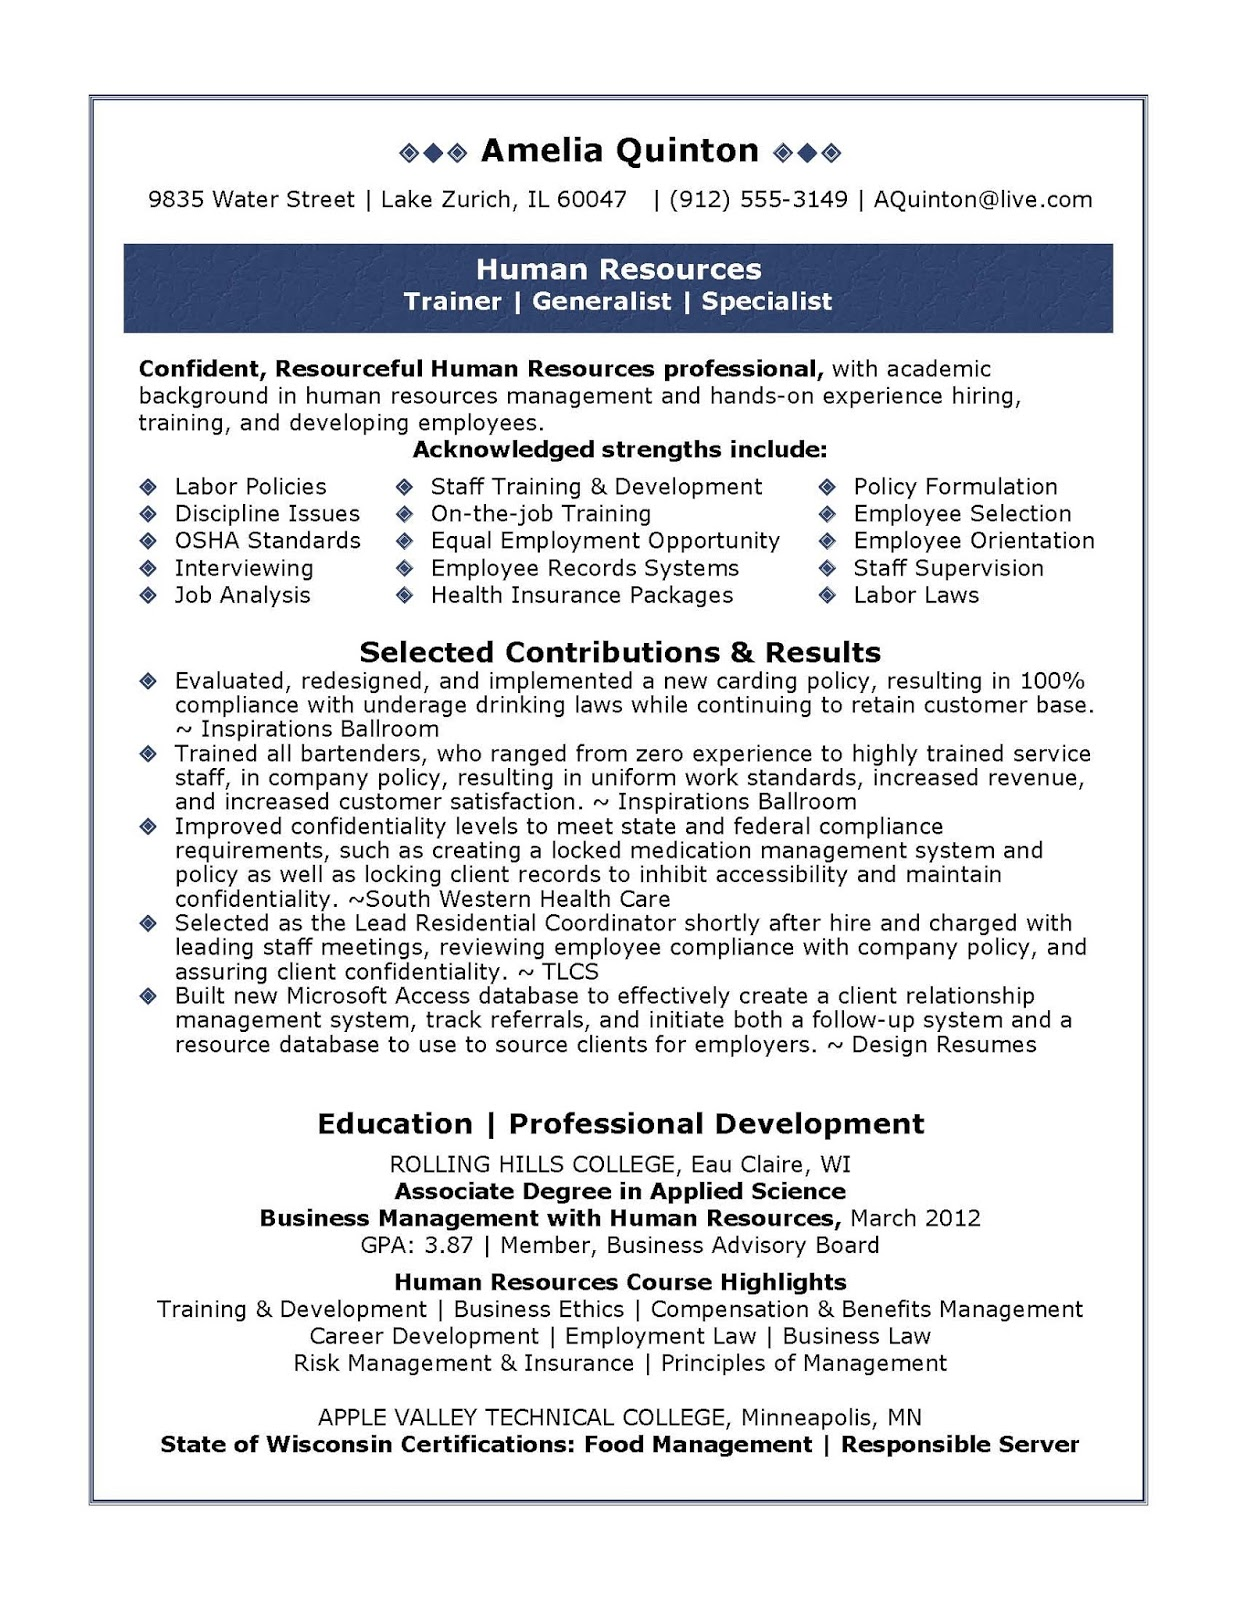 Human Resources Resume Example Sample Human Resources Resume Sample Resumes